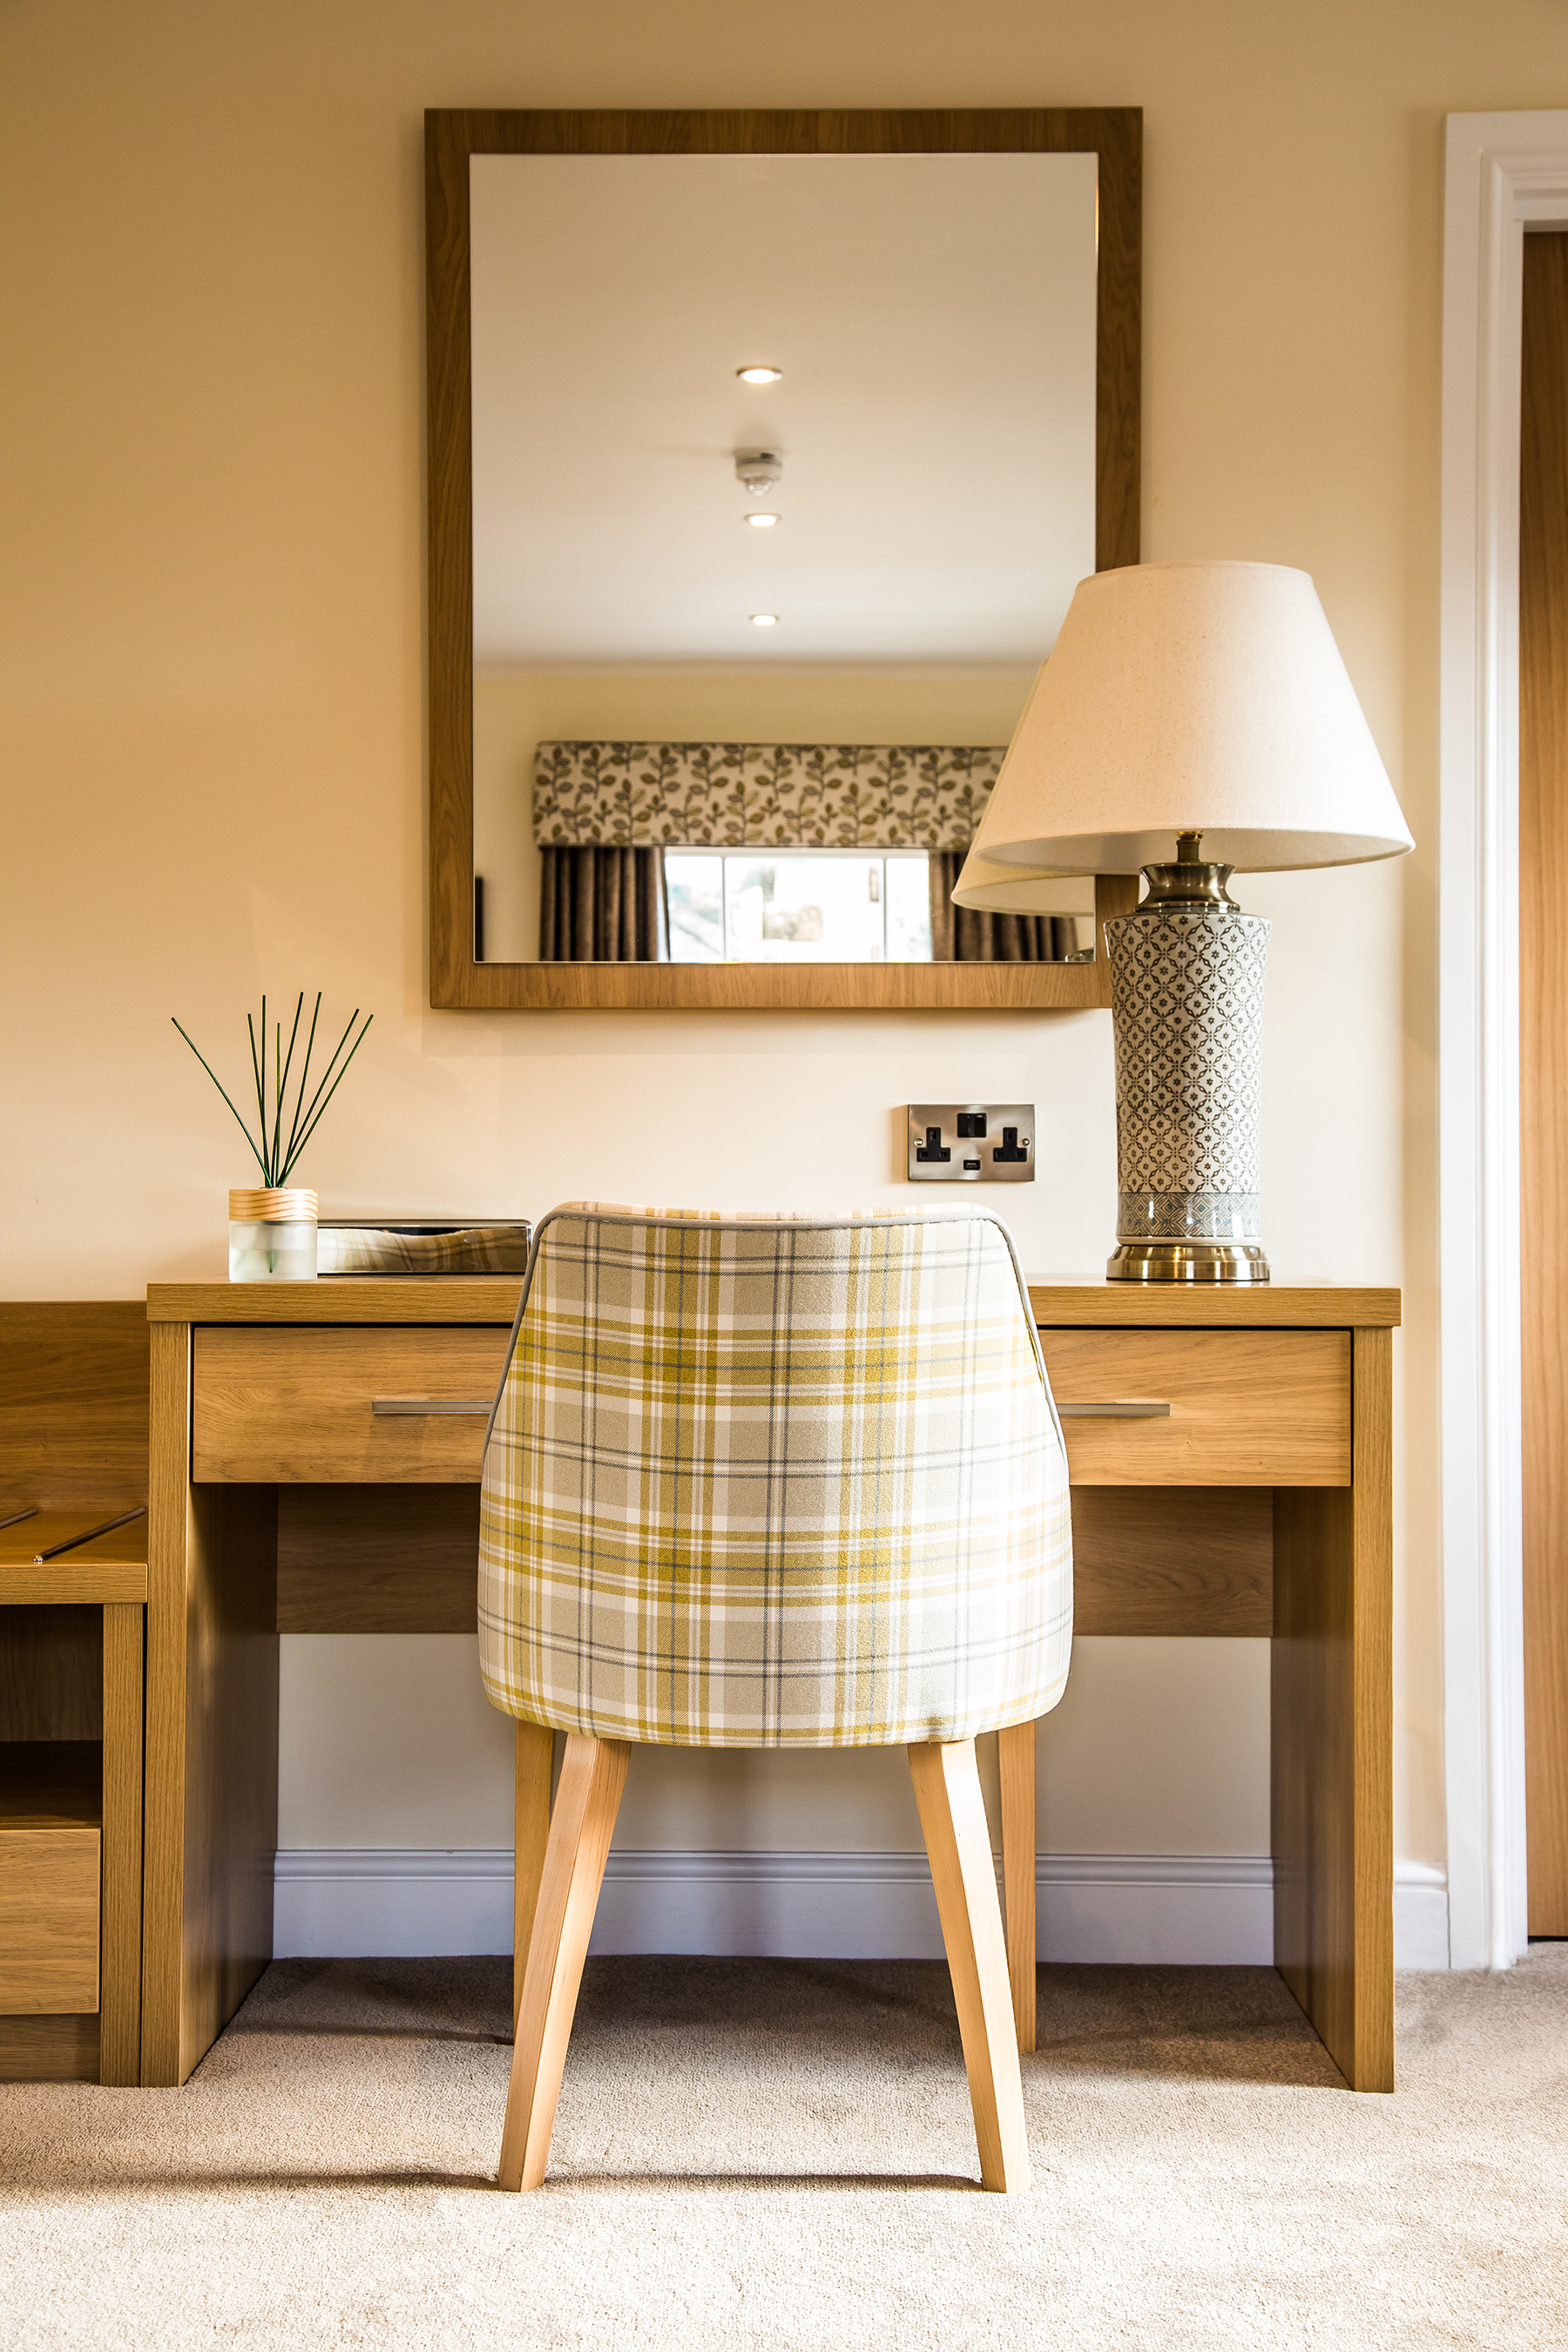 hotel, interior photography, architectural photography, interiors, property, sheffield, peak district, H Boutique, holiday